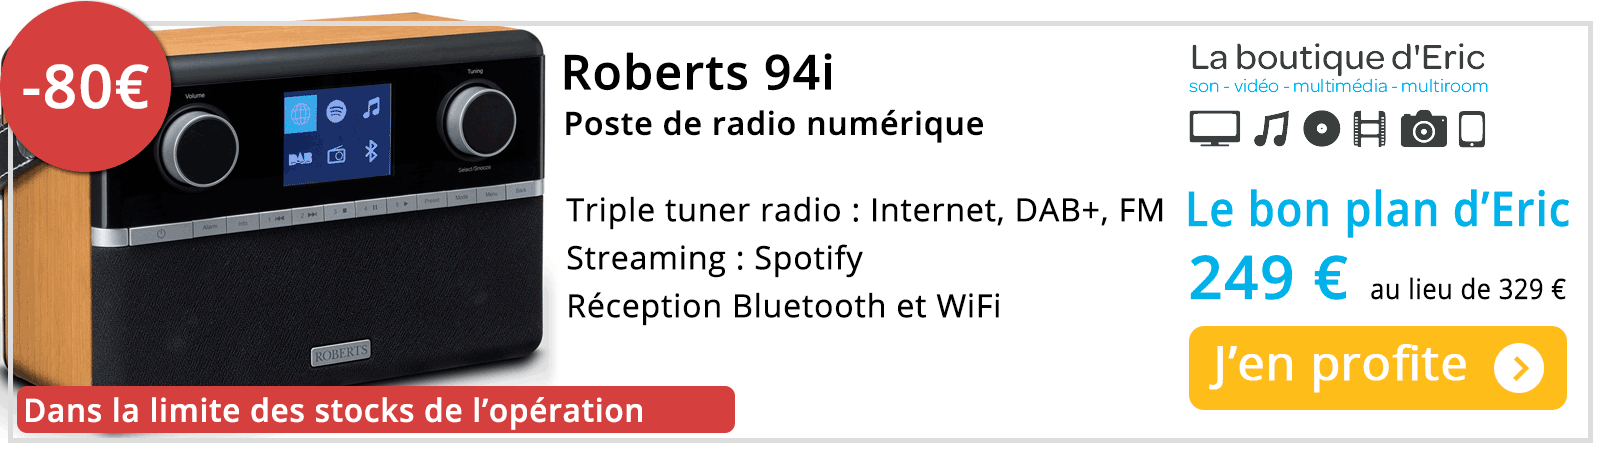 Poste de radio WiFi, Internet, DAB - promotion de La boutique d'Eric